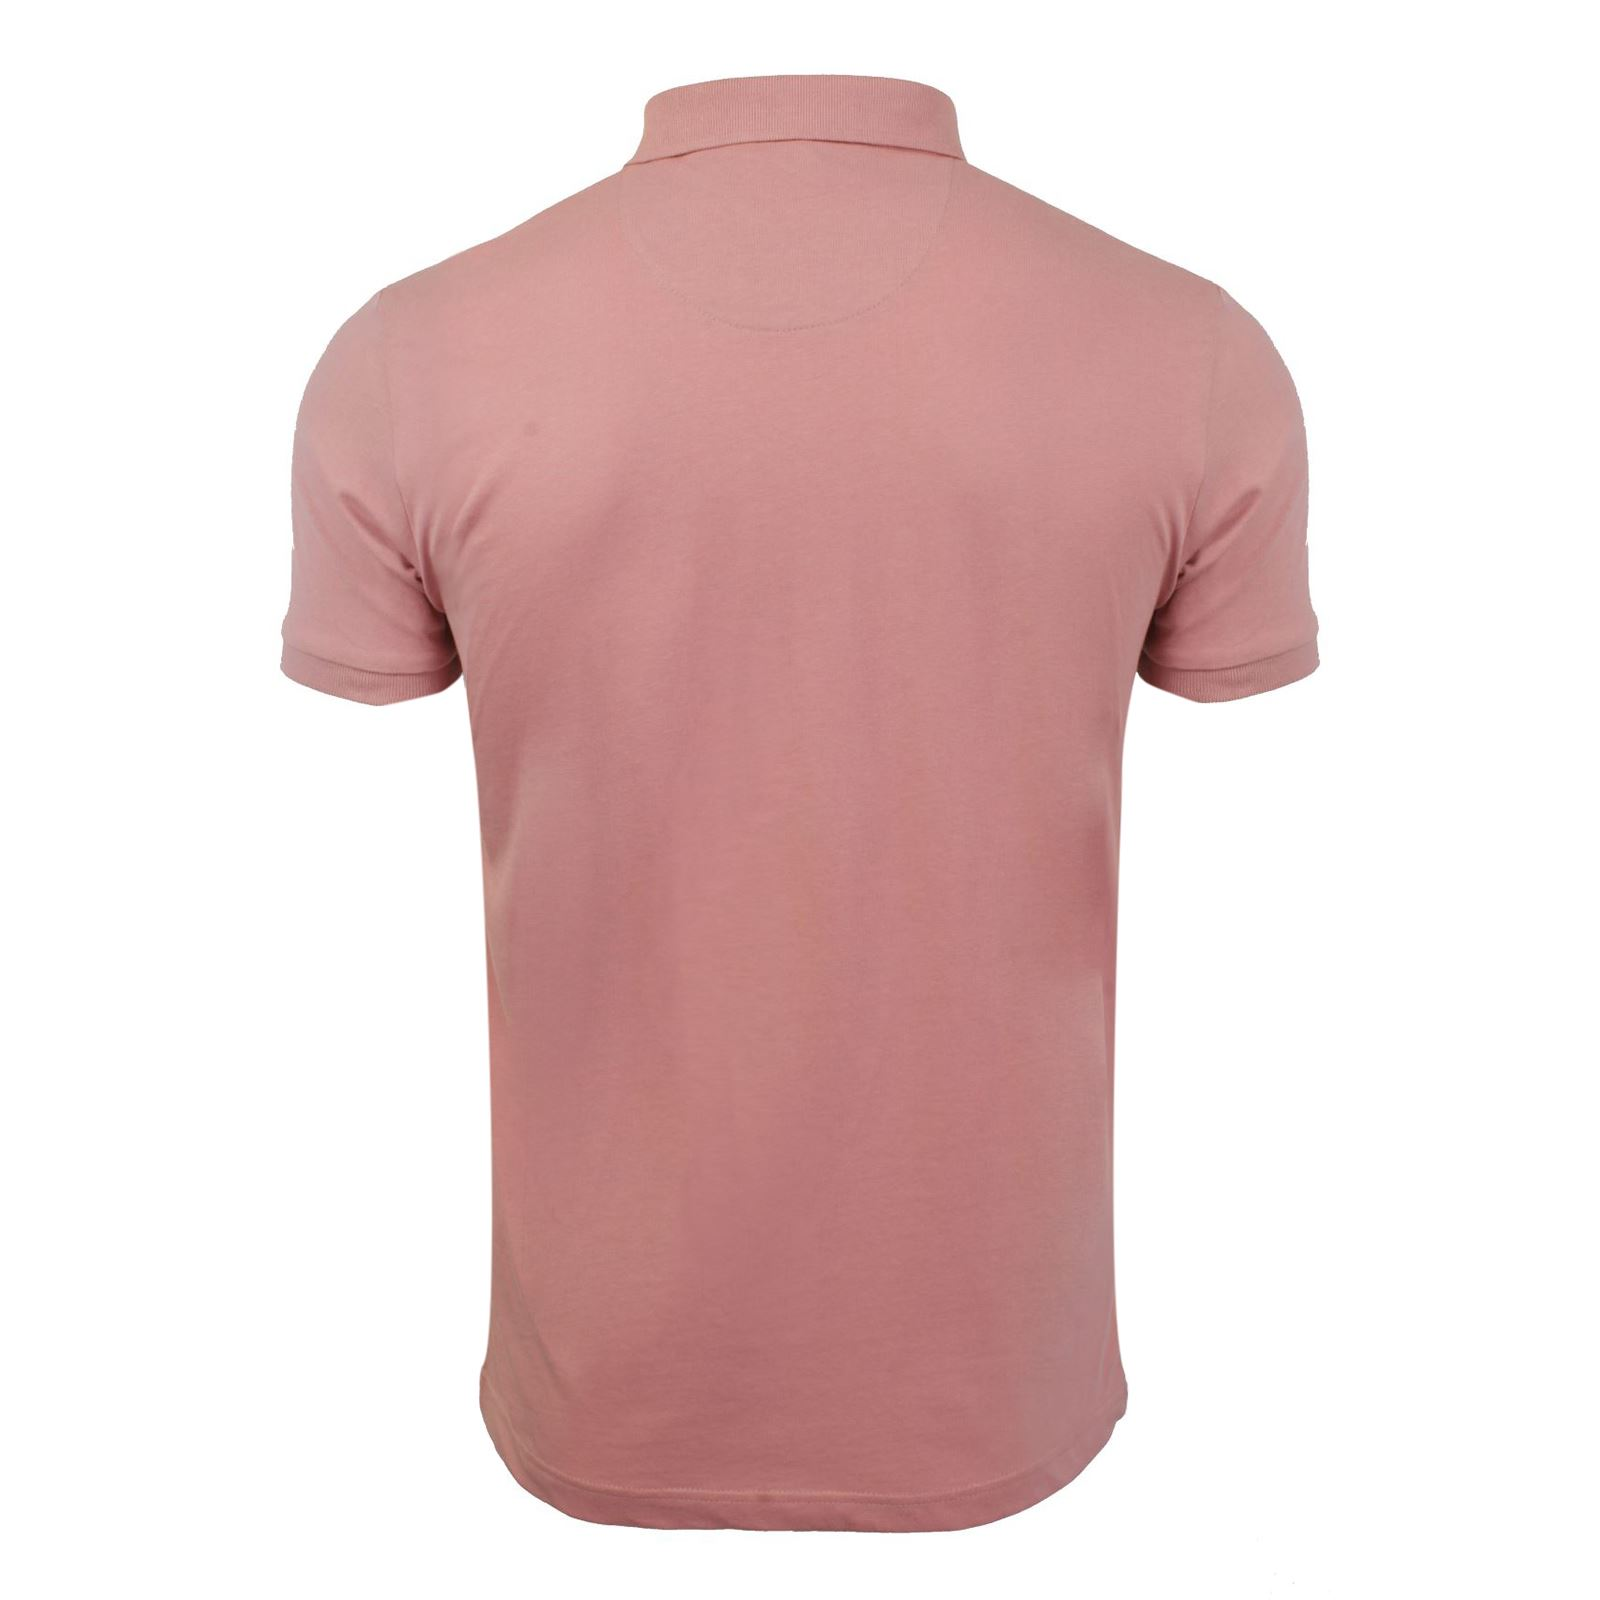 Brave-Soul-Julius-Mens-Polo-T-Shirt-Cotton-Collared-Short-Sleeve-Casual-Top miniature 27